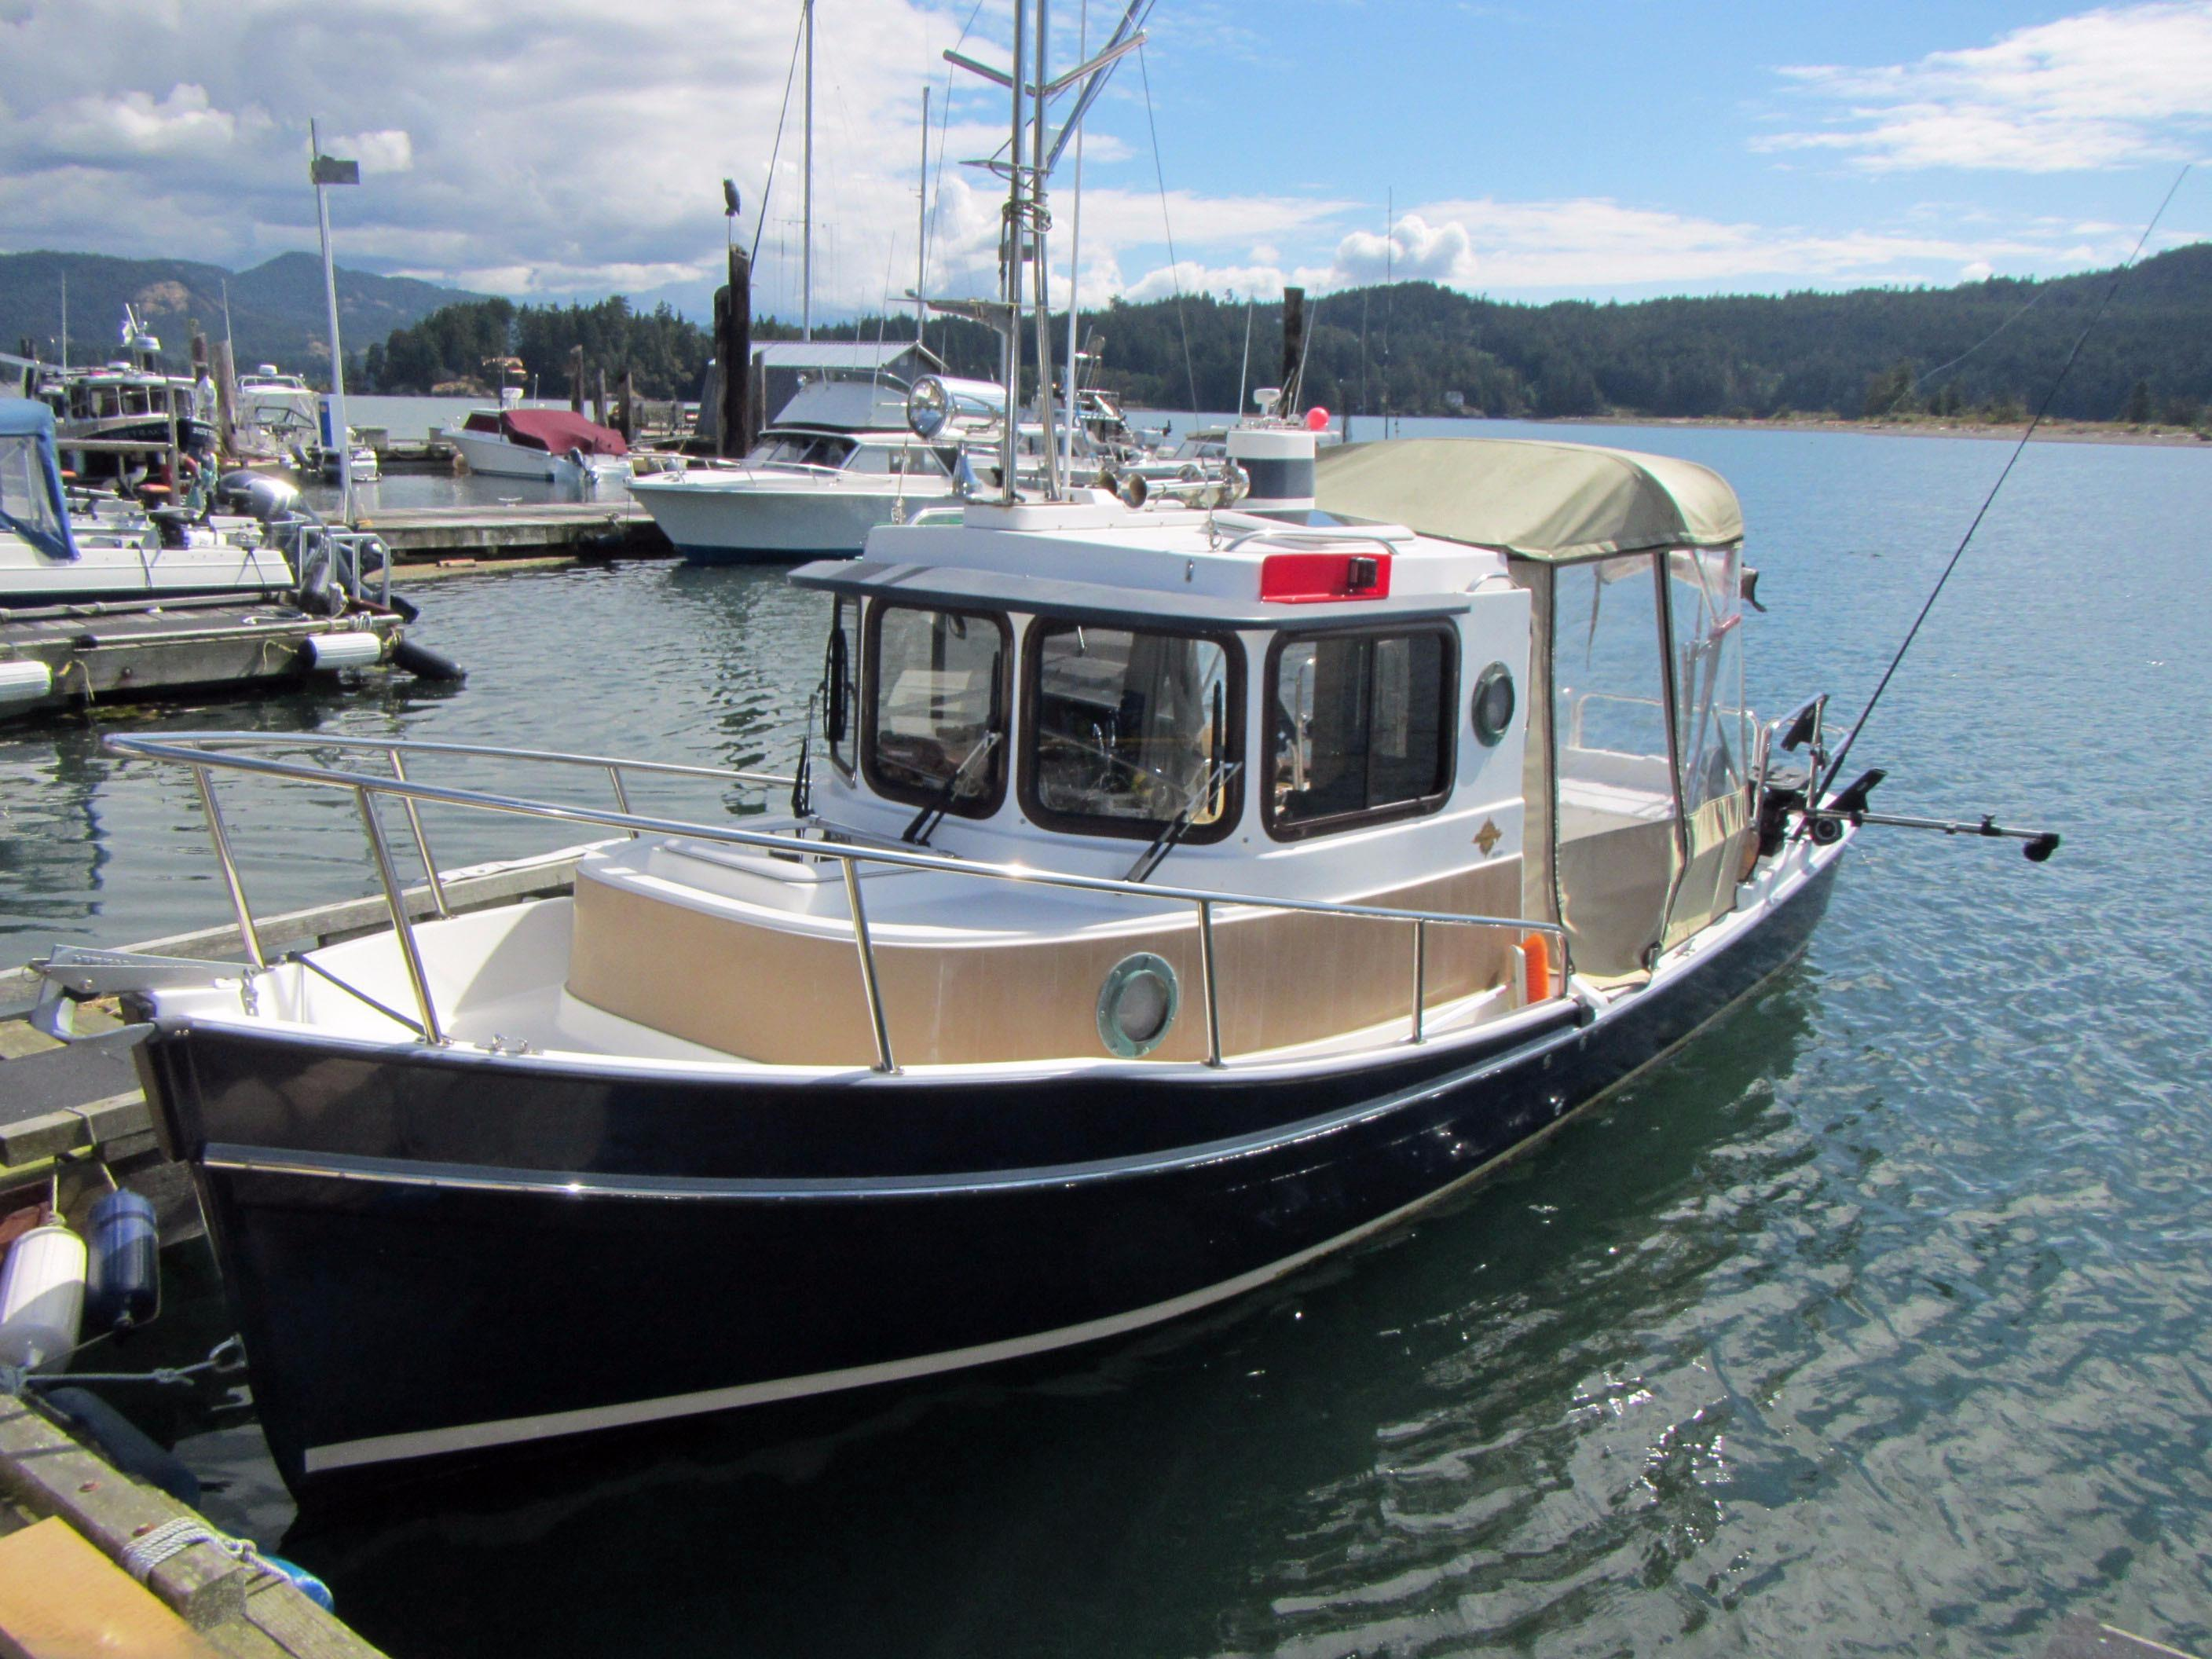 2011 ranger r 21 ec power boat for sale www yachtworld